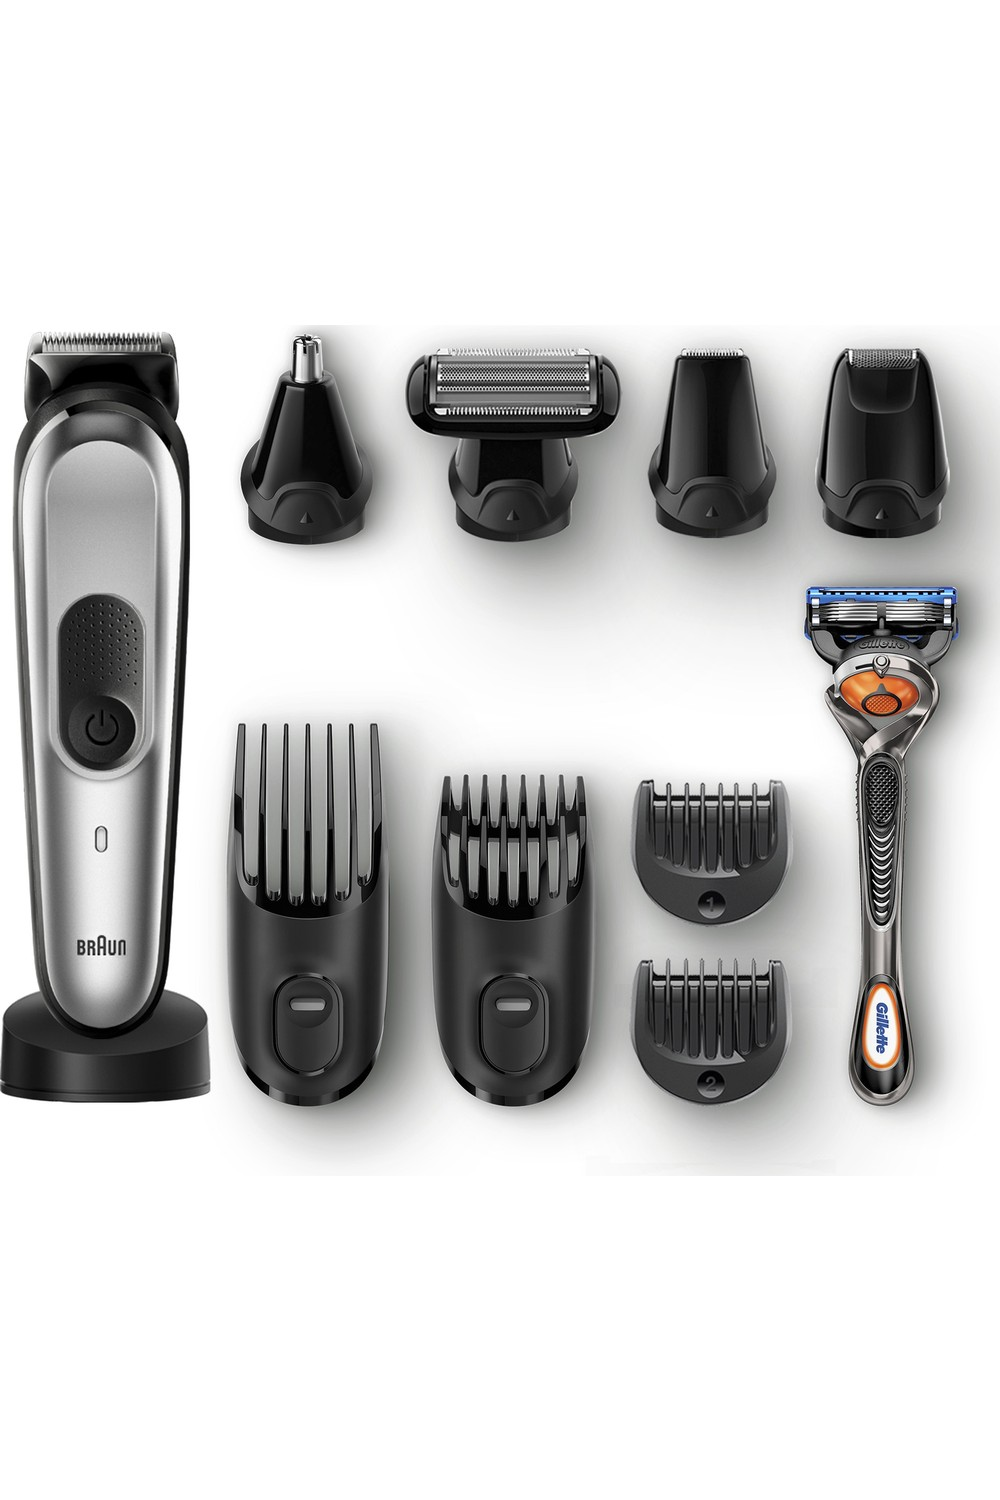 Braun Male Grooming Set 7020